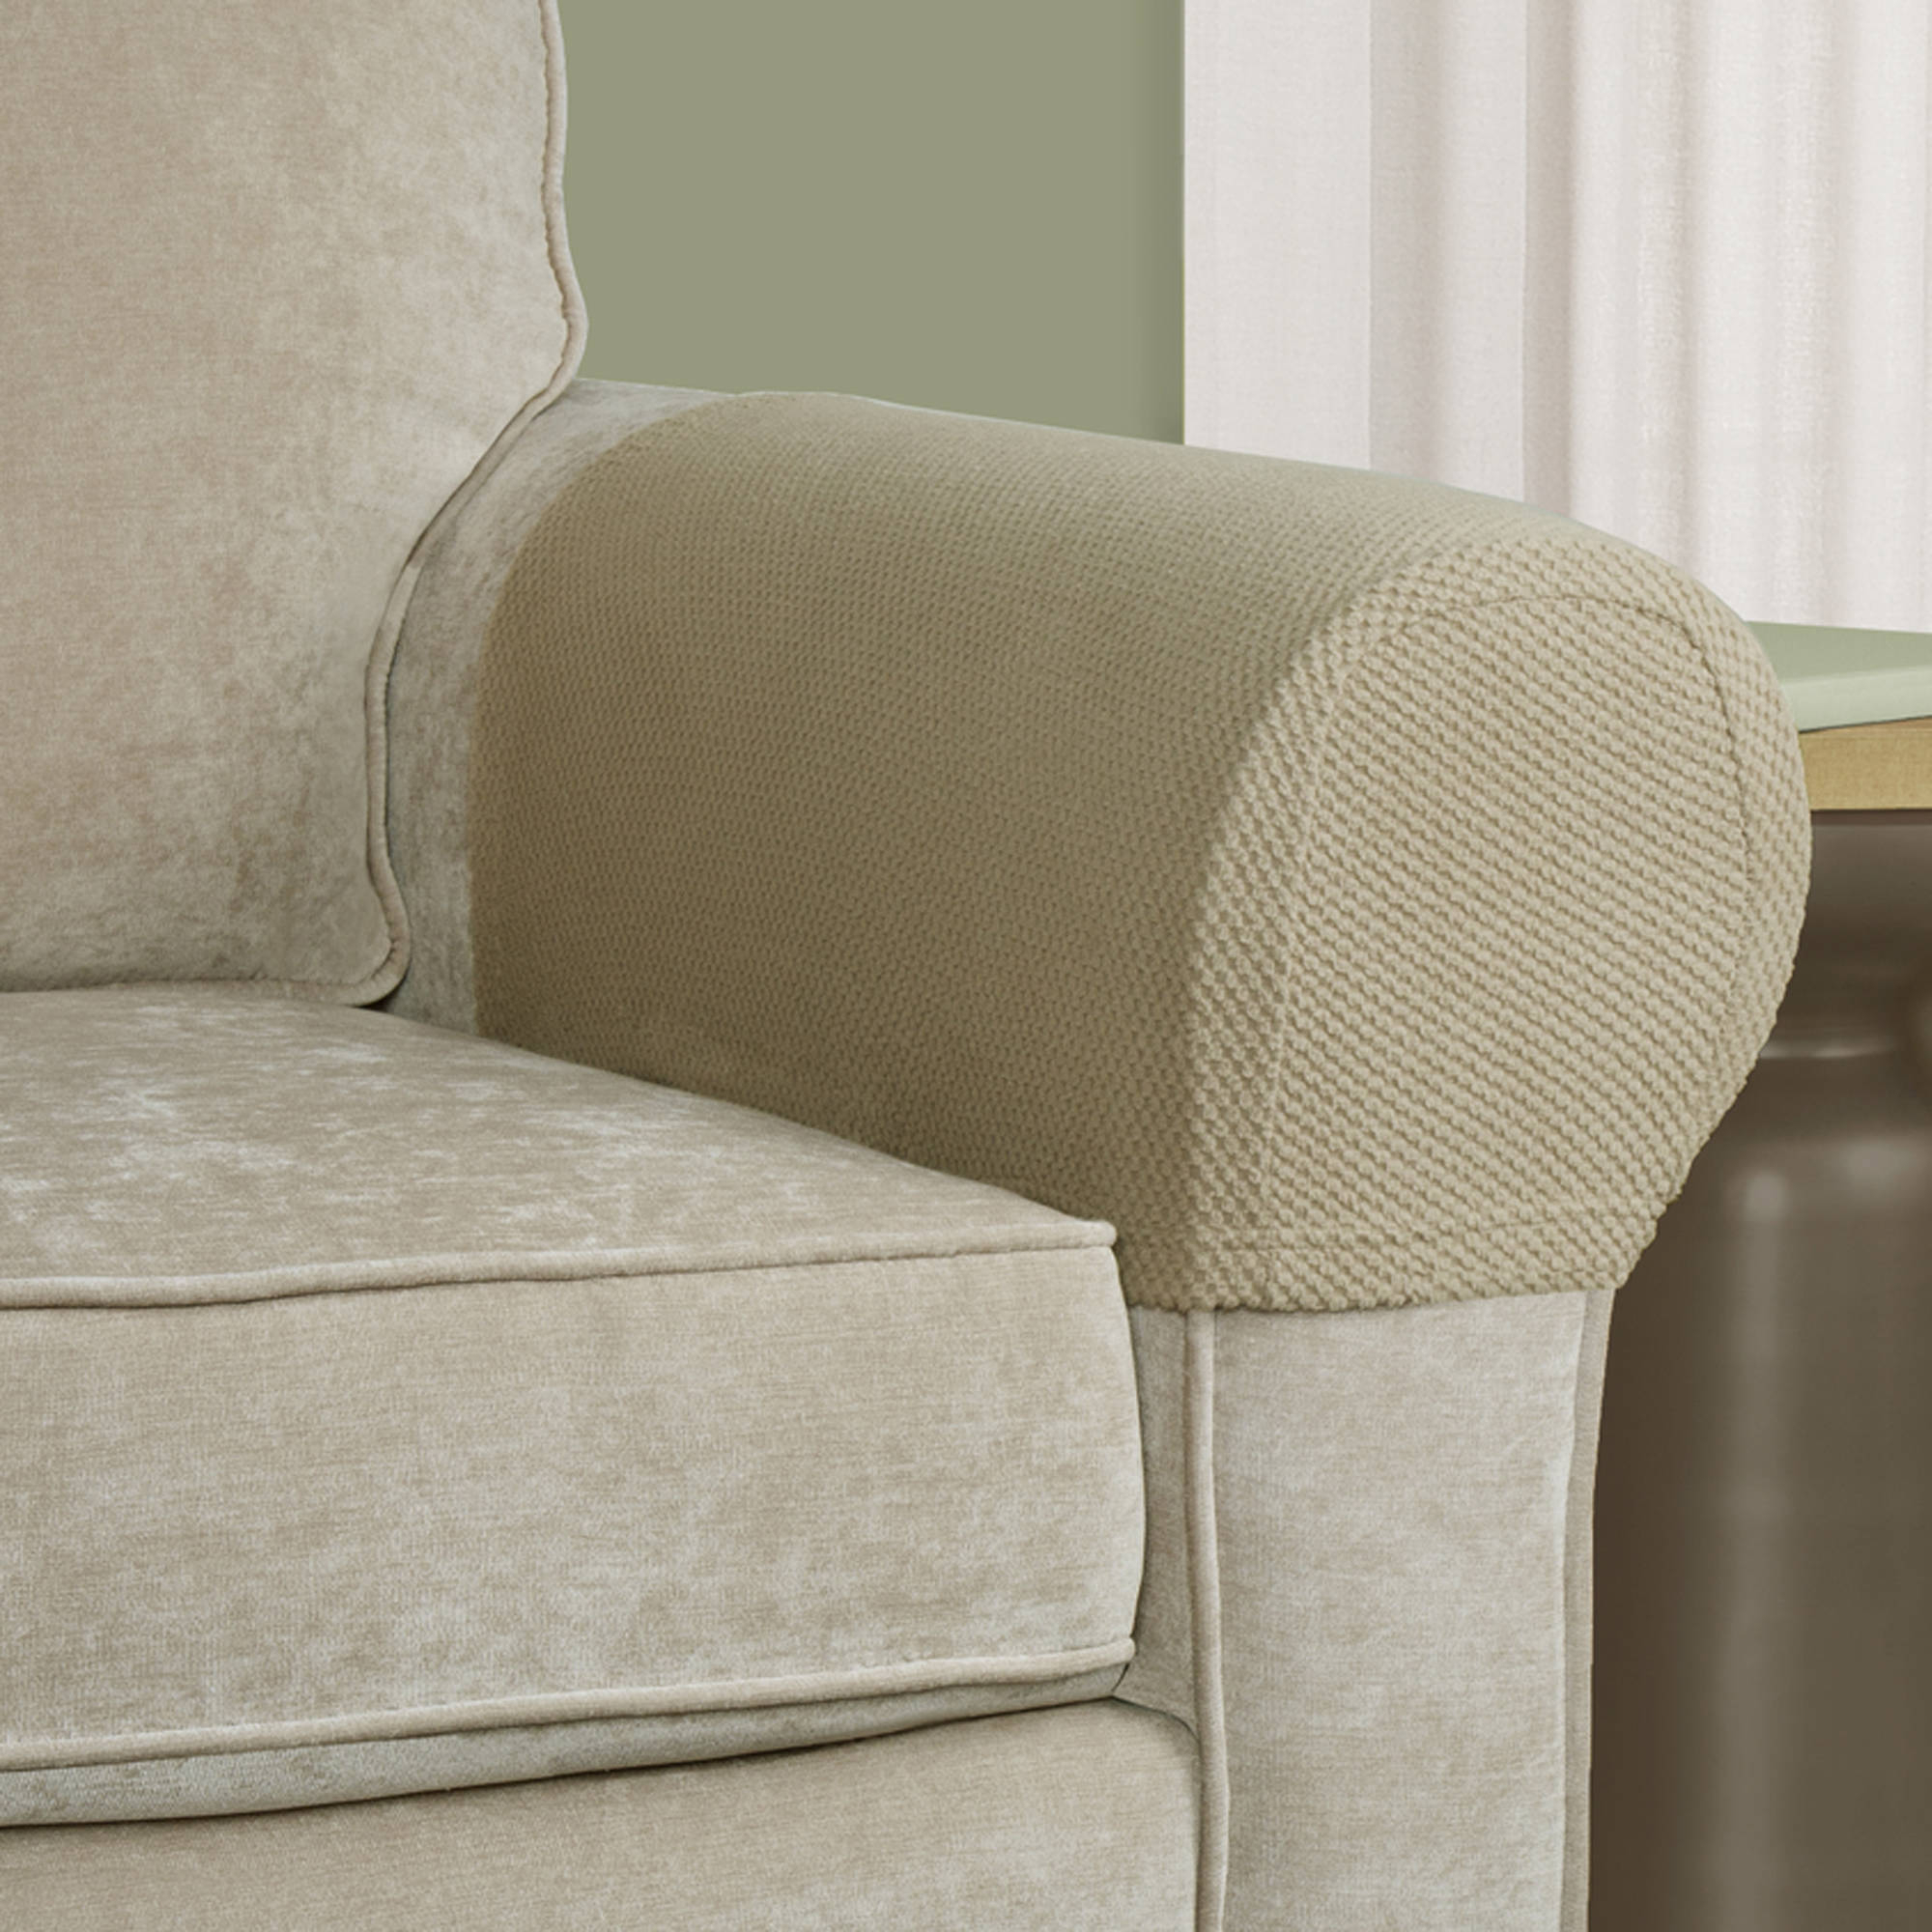 Most Up To Date Furniture: Sofa Covers At Walmart For A Slightly Loose And Casual Pertaining To Sofa And Chair Covers (View 9 of 20)